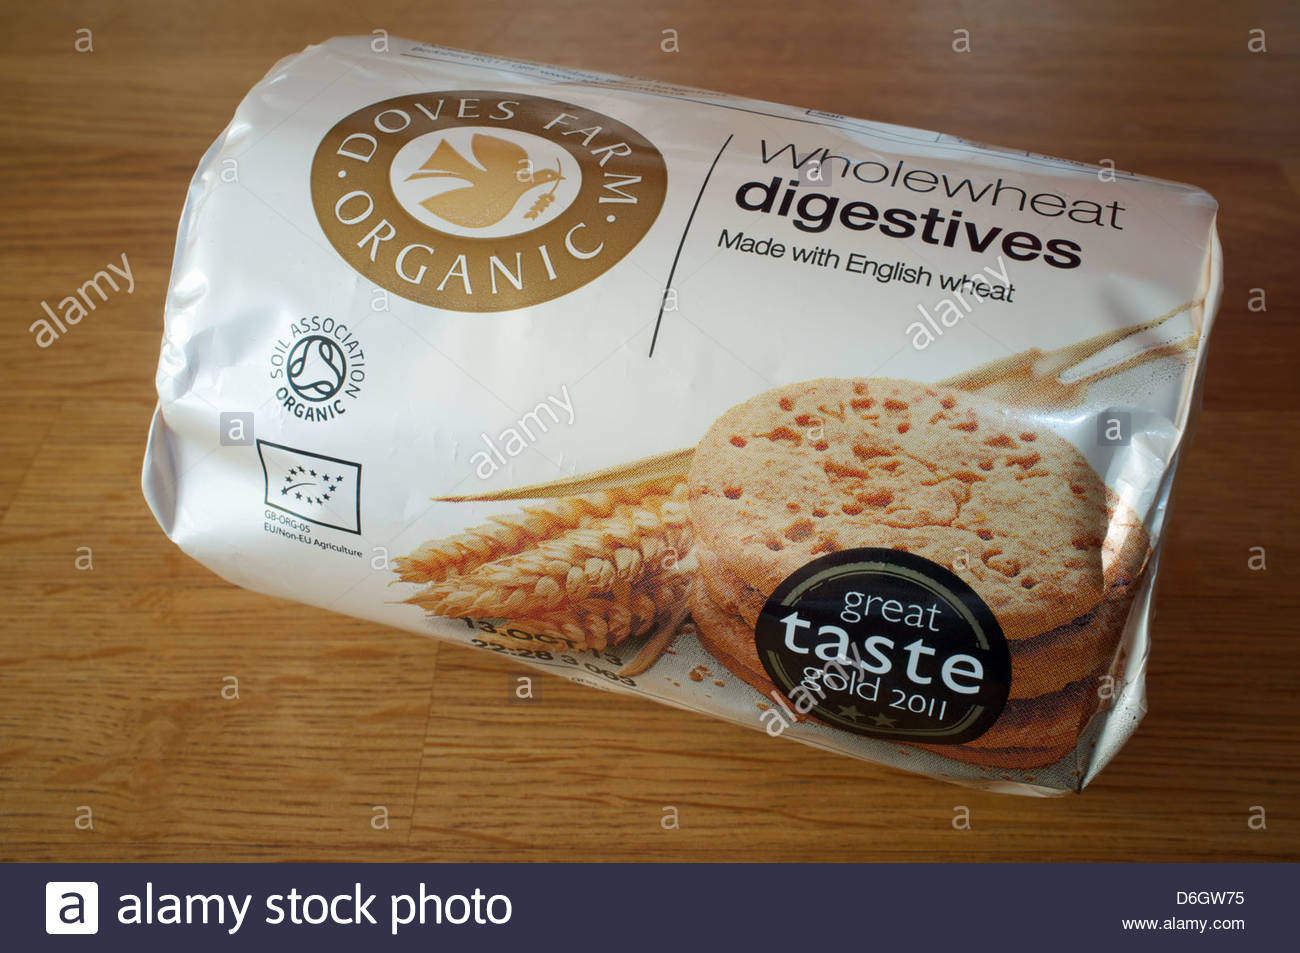 Doves Farm organic wholewheat digestive biscuits - Stock Image